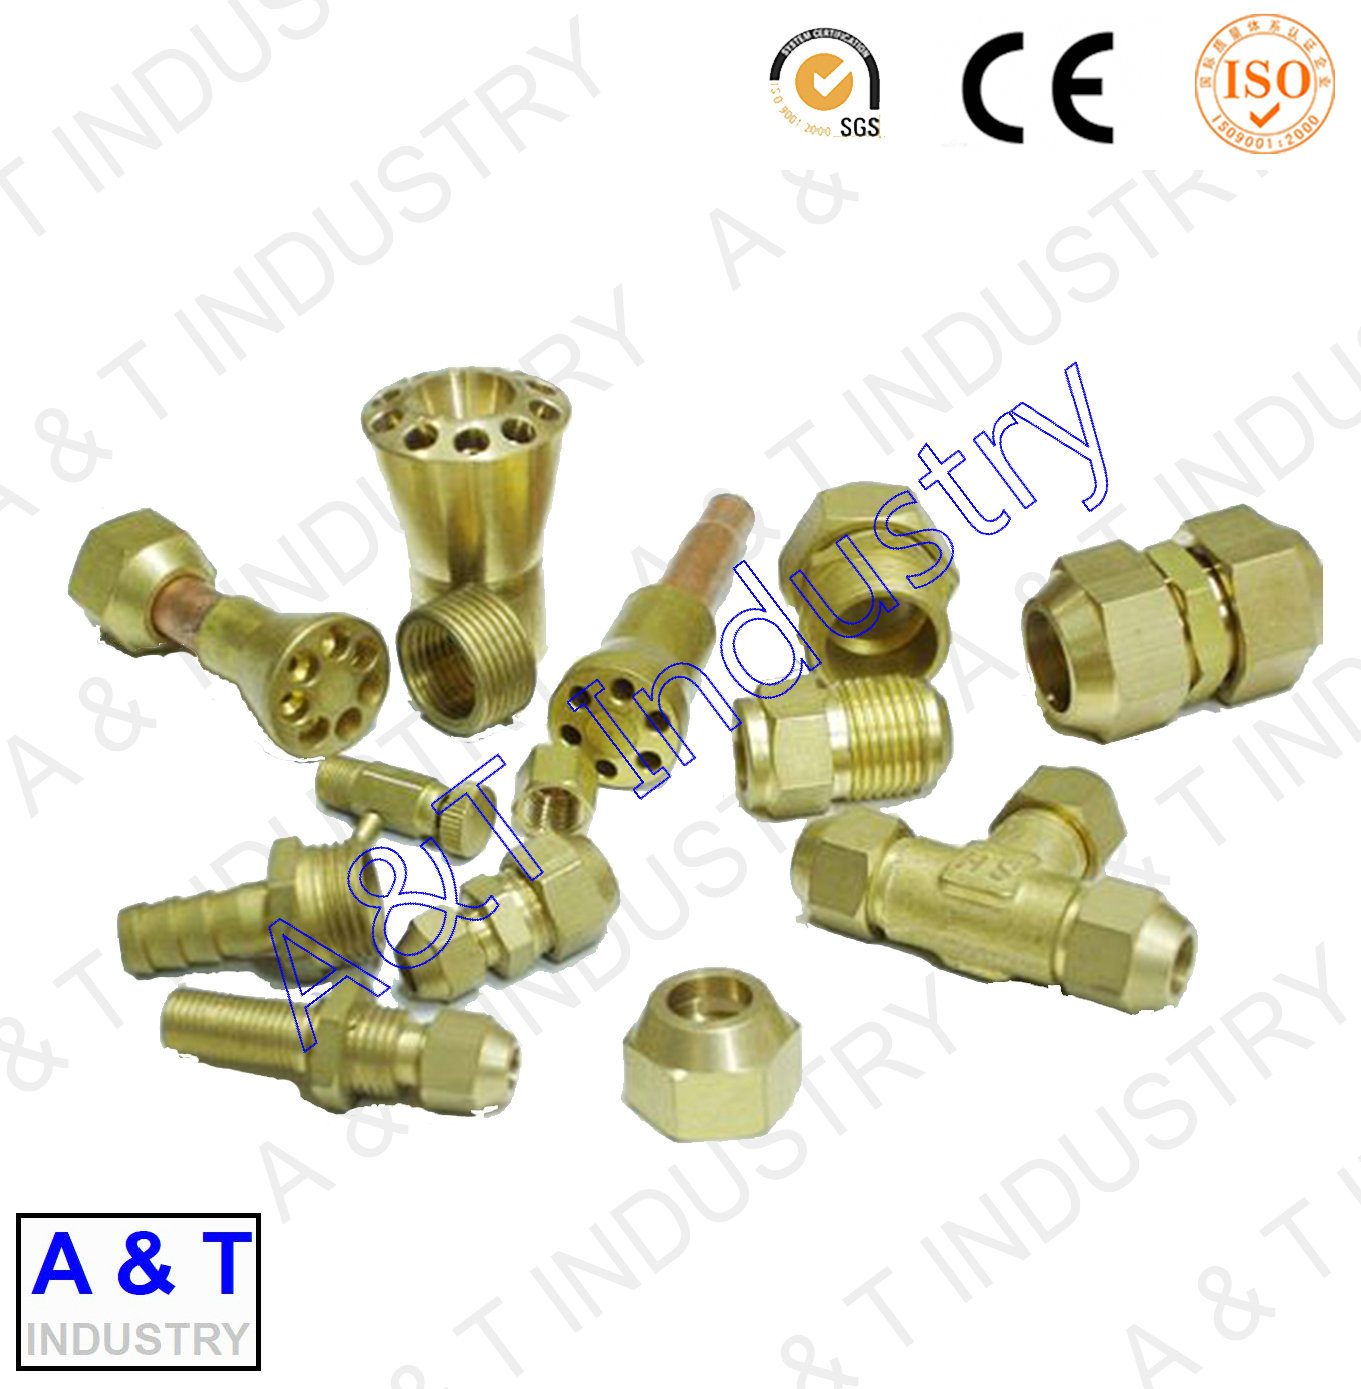 CNC OEM ODM Customized Brass/Aluminum/Stainless Steel Parts Brass Fitting